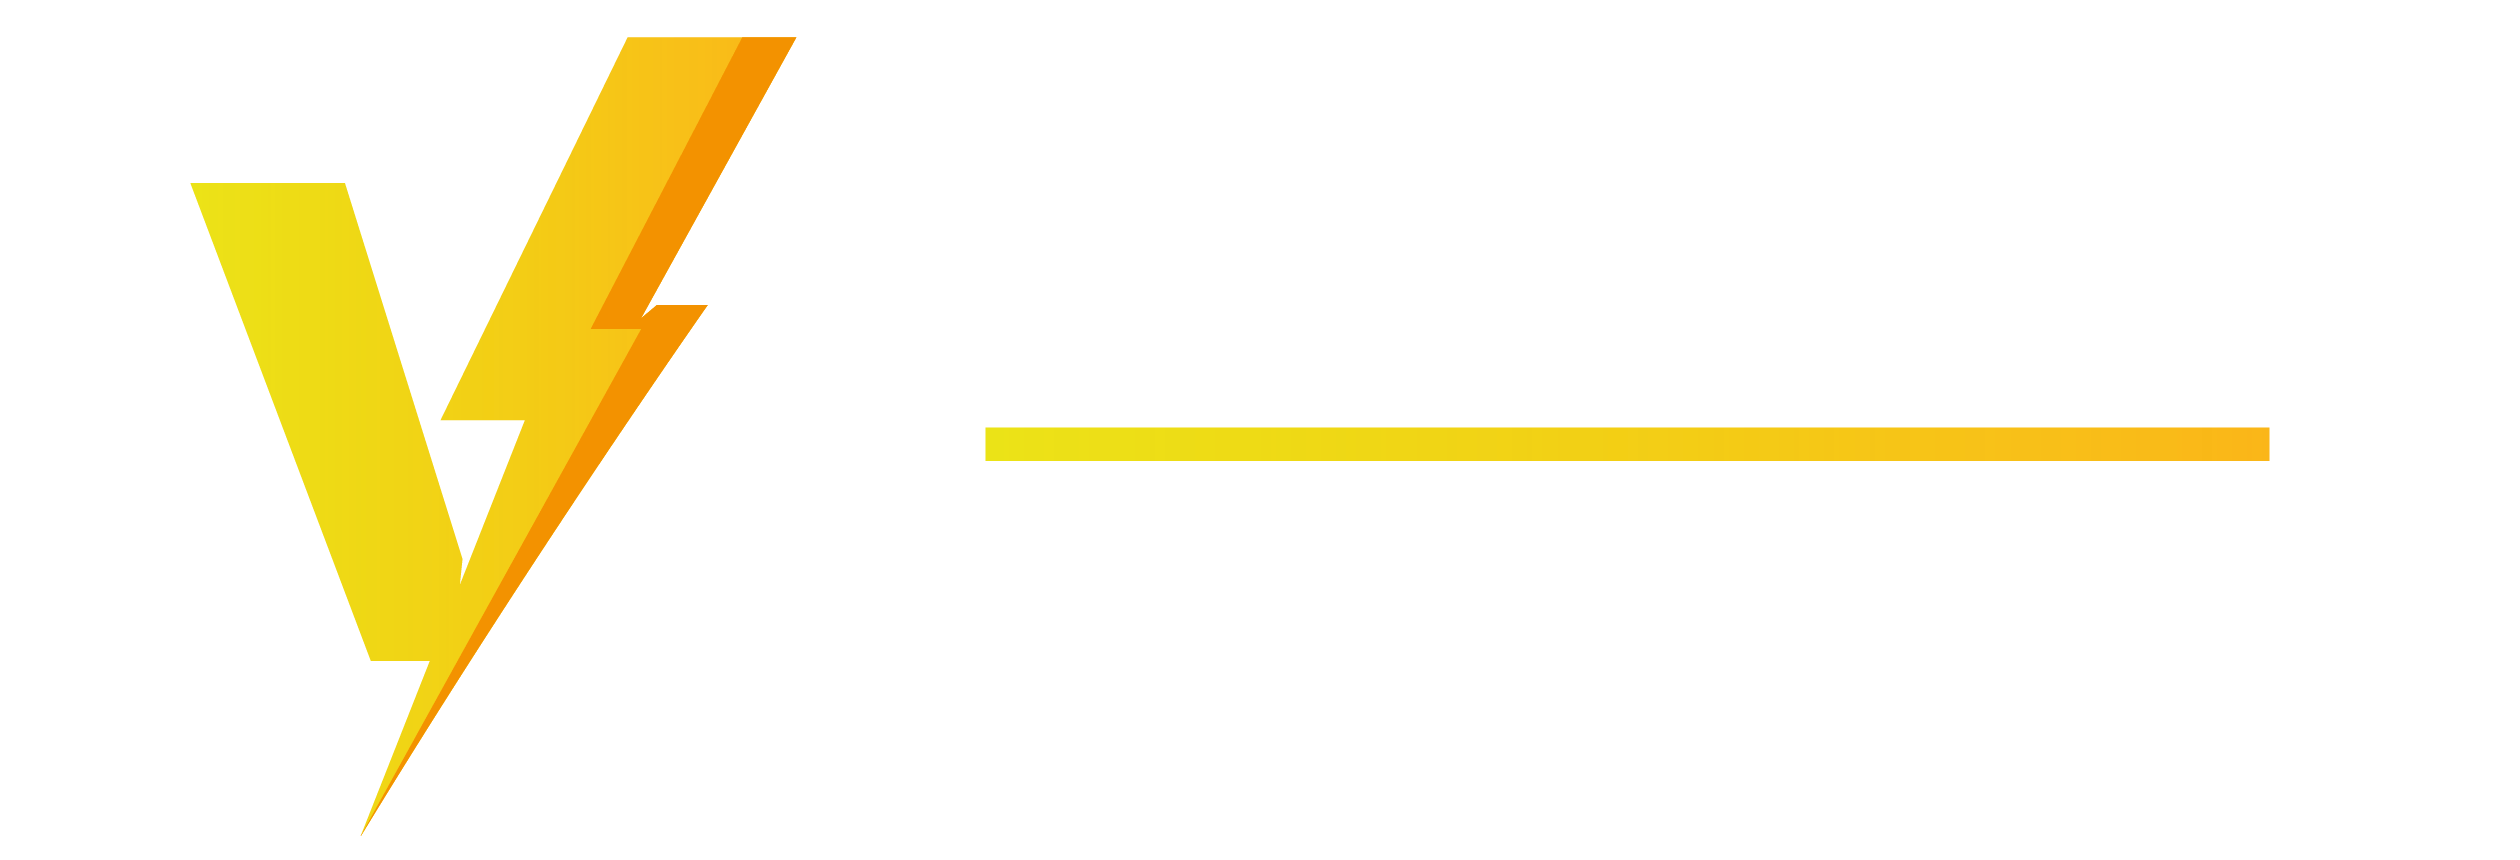 Wilmar Velasquez – Marketing y lenguaje corporal